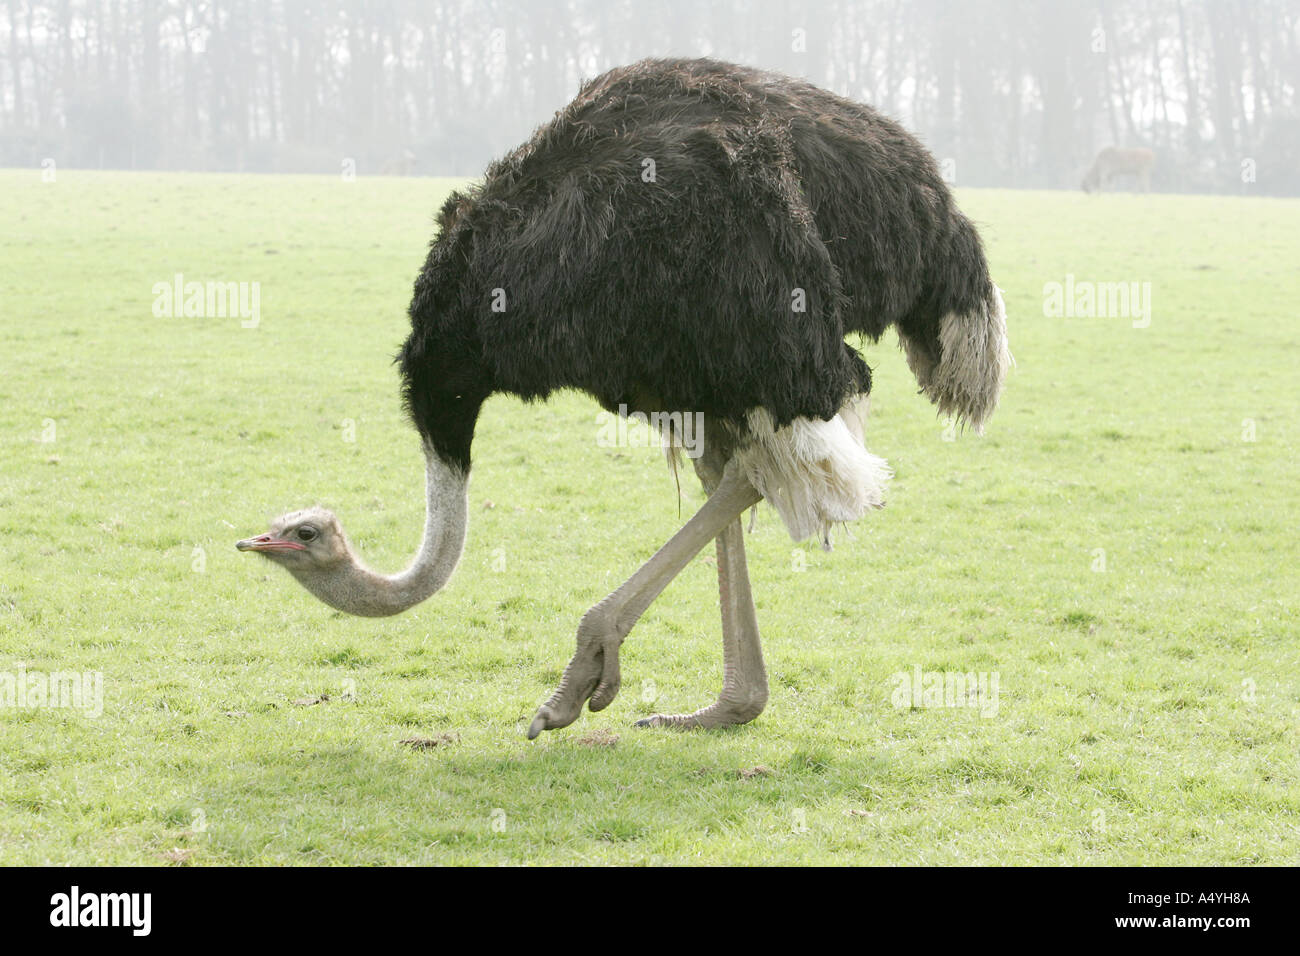 ostrich feet stock photos u0026 ostrich feet stock images alamy